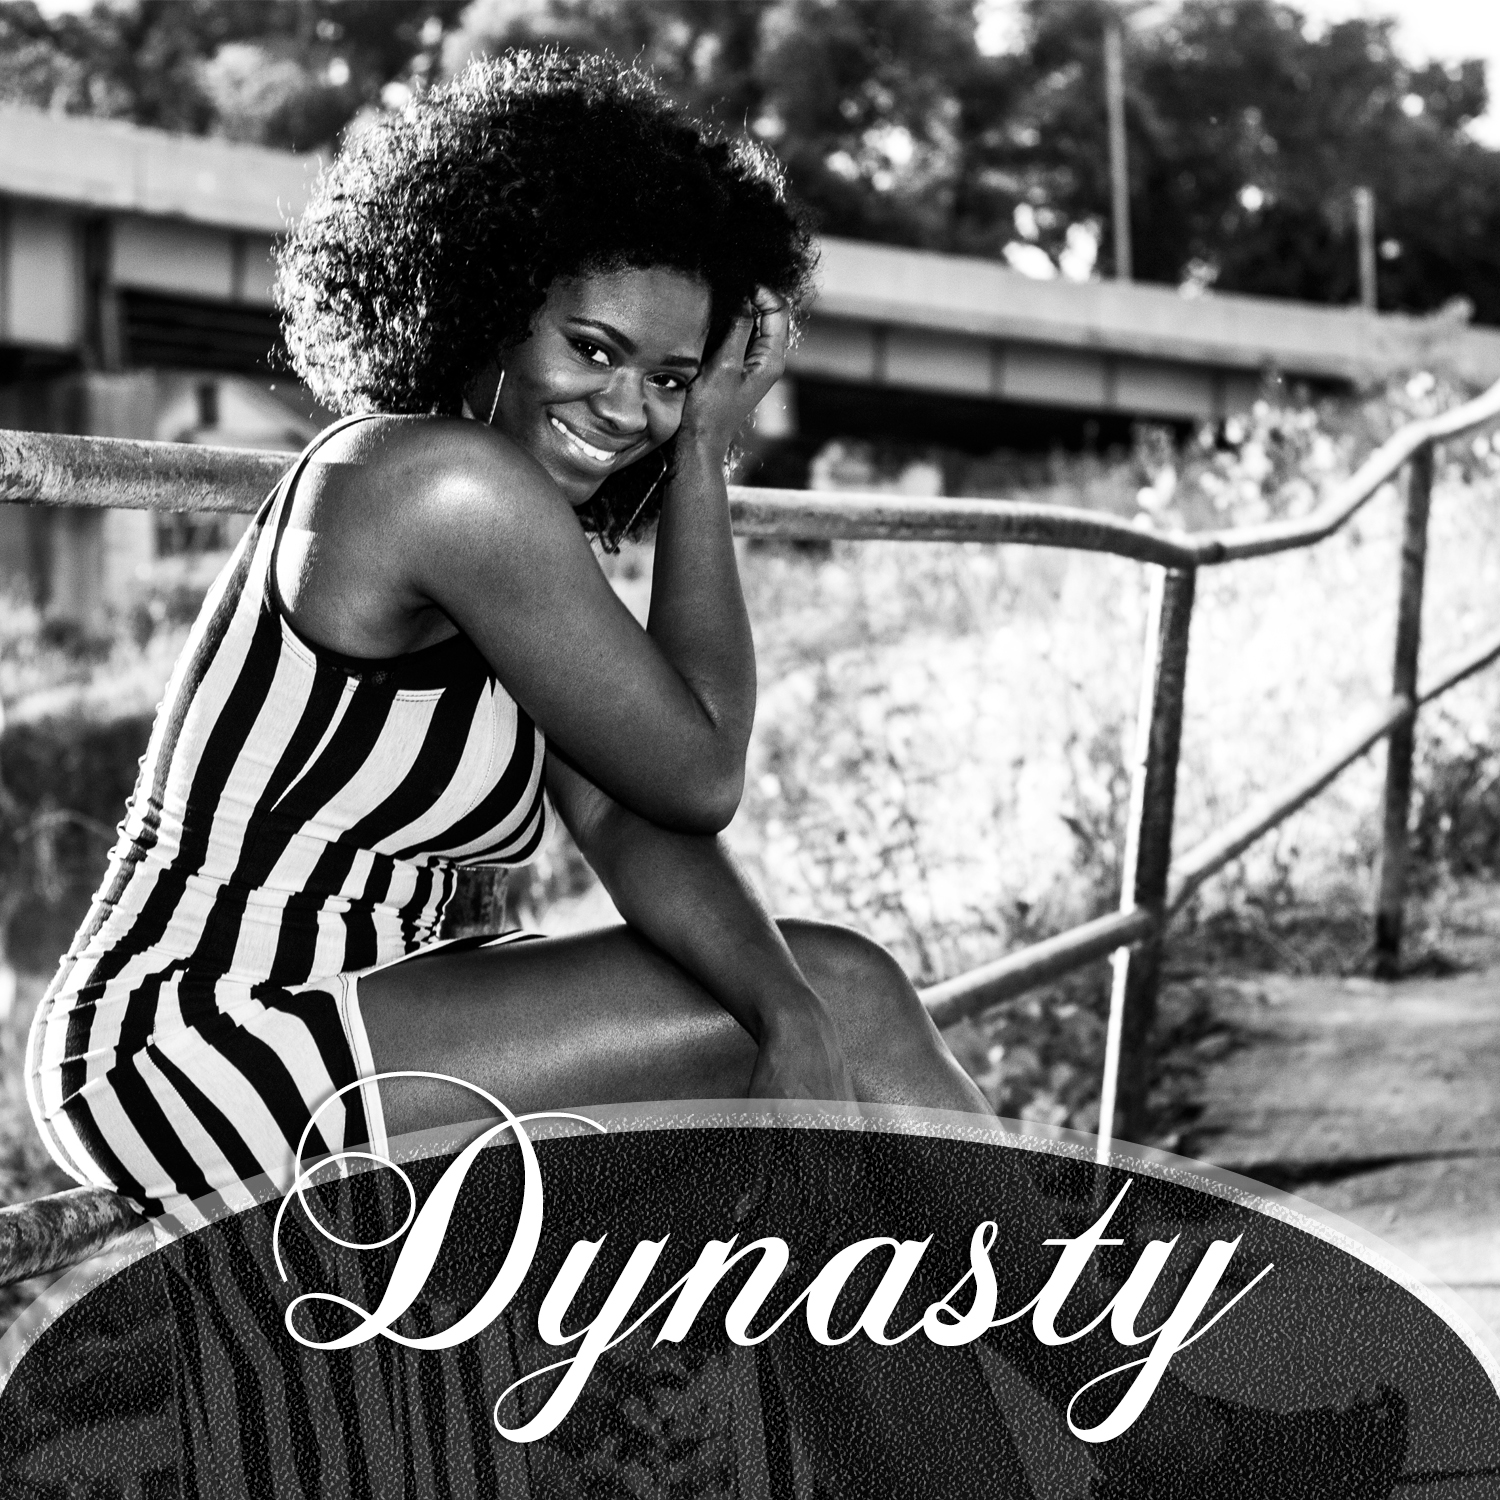 Dynasty front cover album art